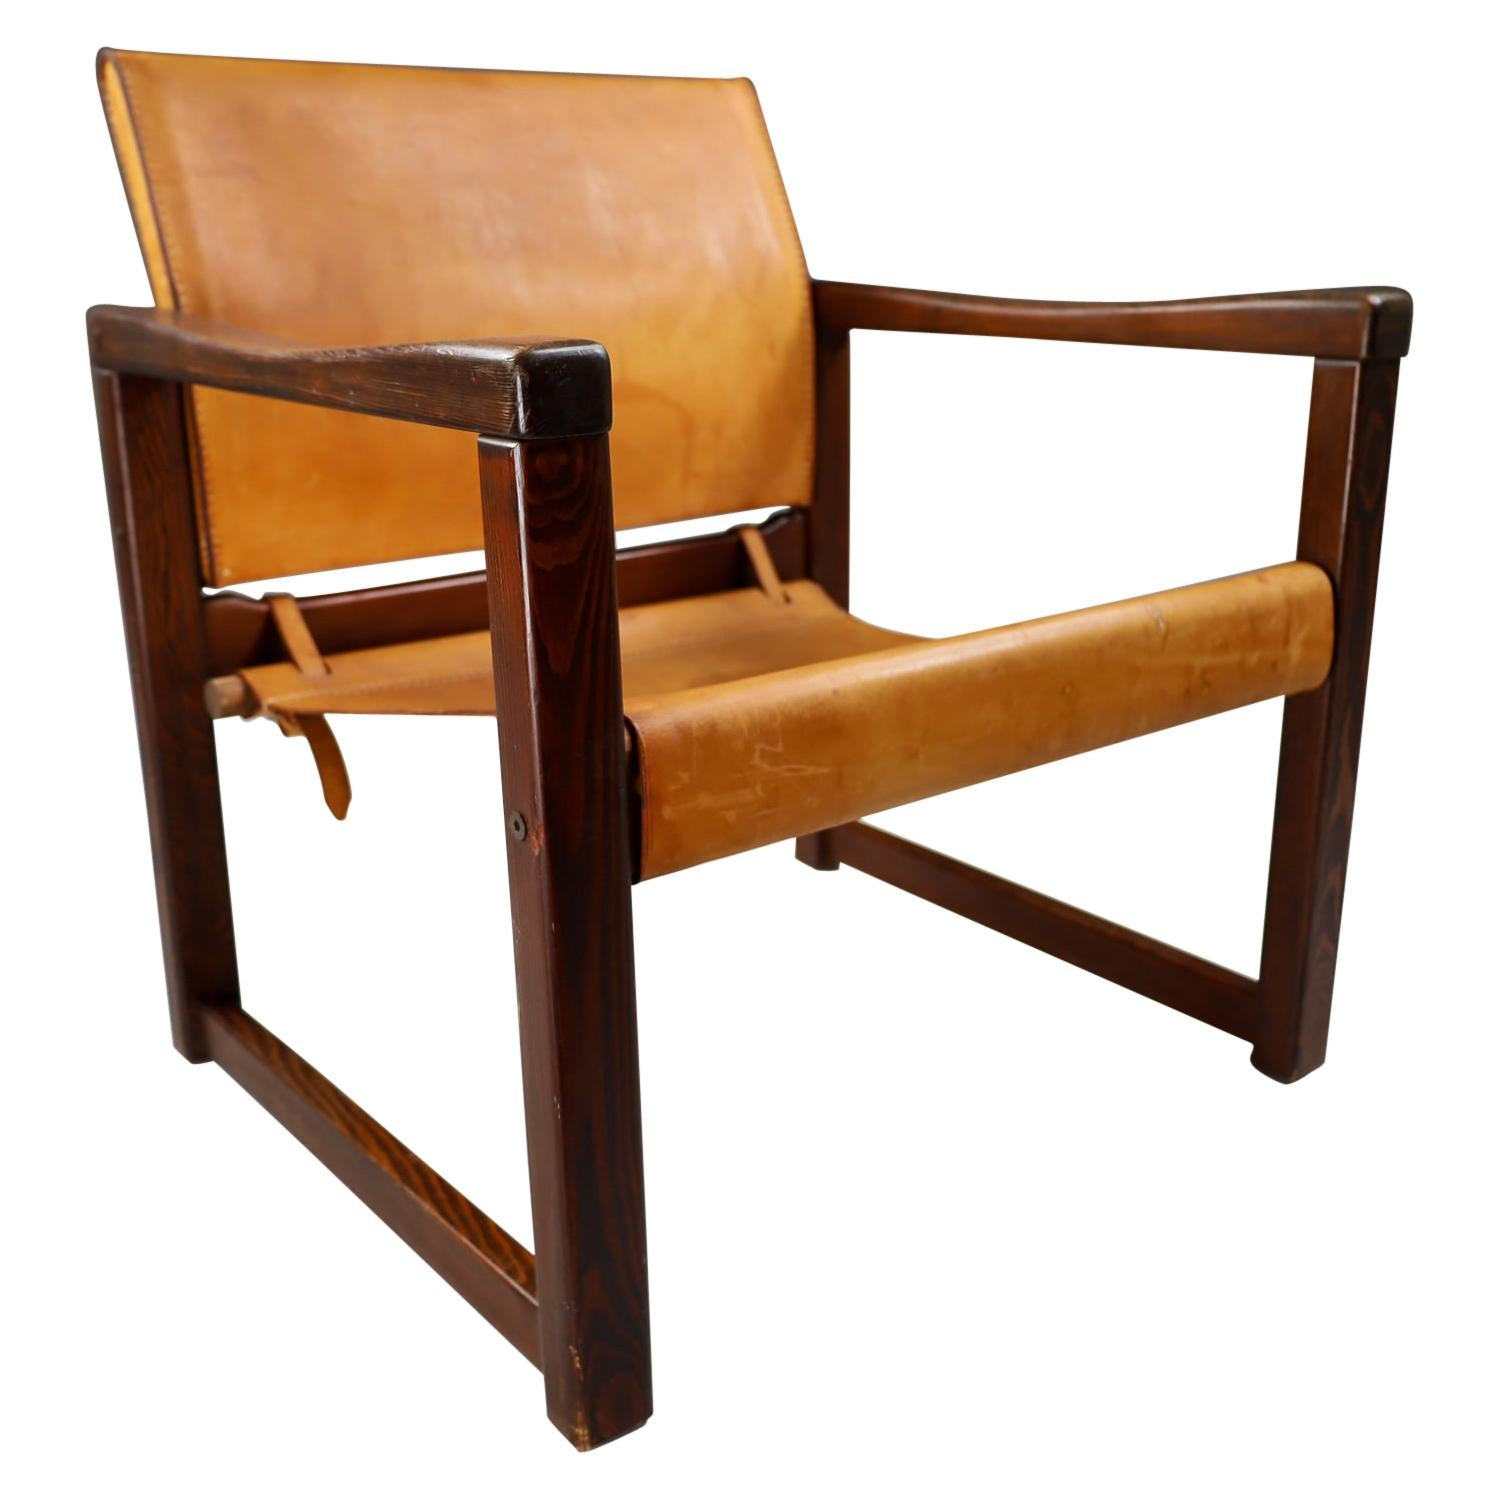 Midcentury Safari Lounge Chair in Patinated Cognac Saddle Leather, 1970s